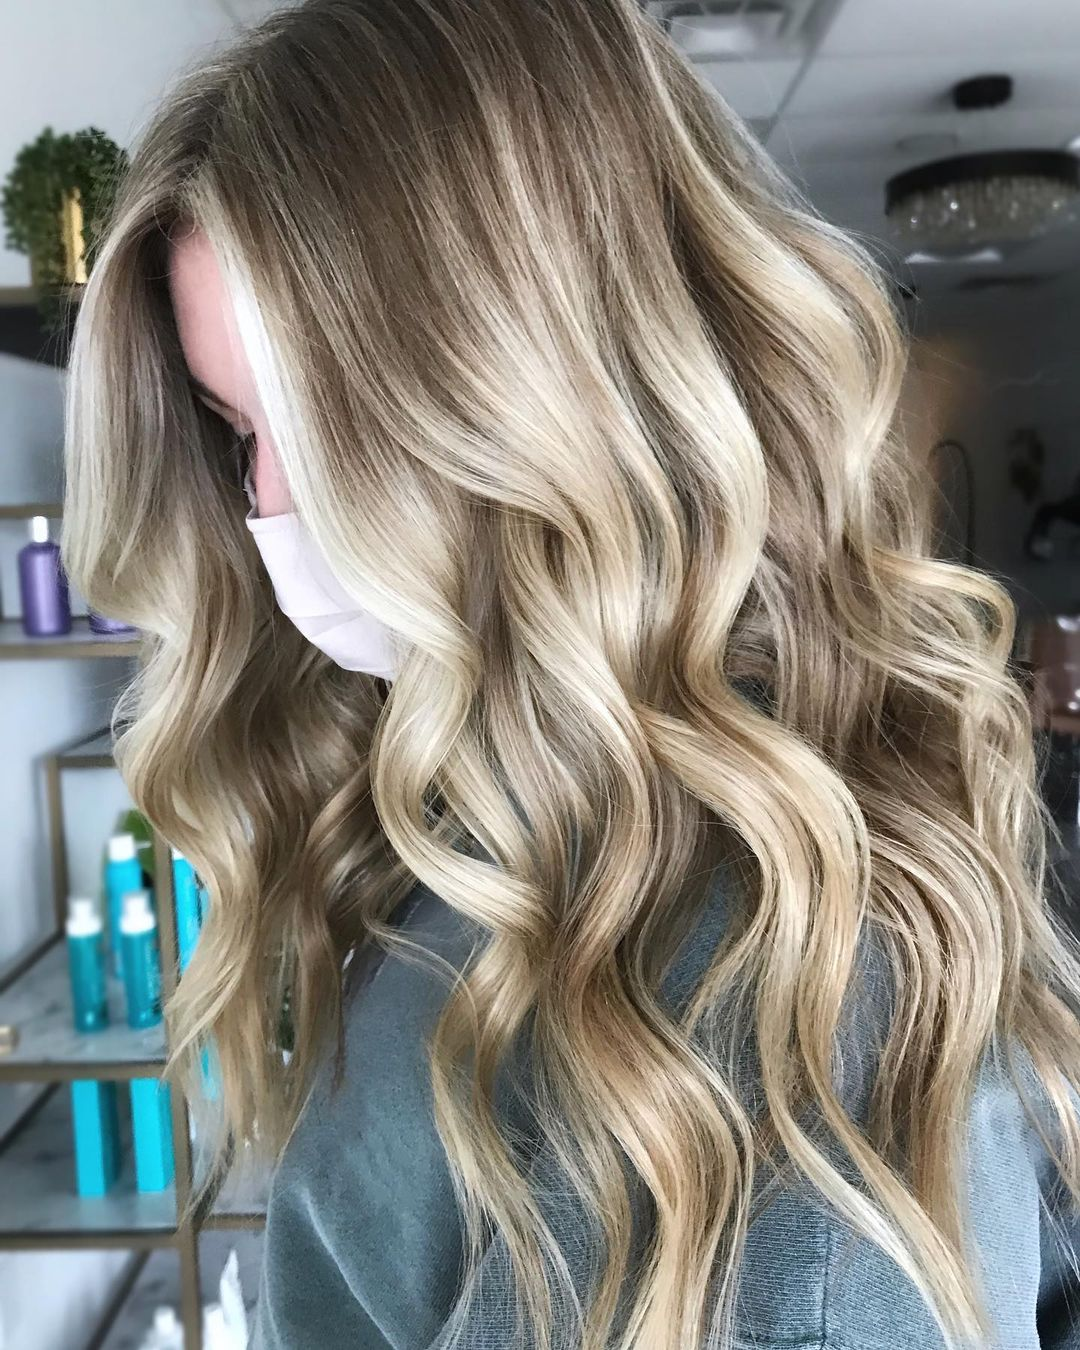 Dirty Blonde Hair with Chunky Bright Highlights